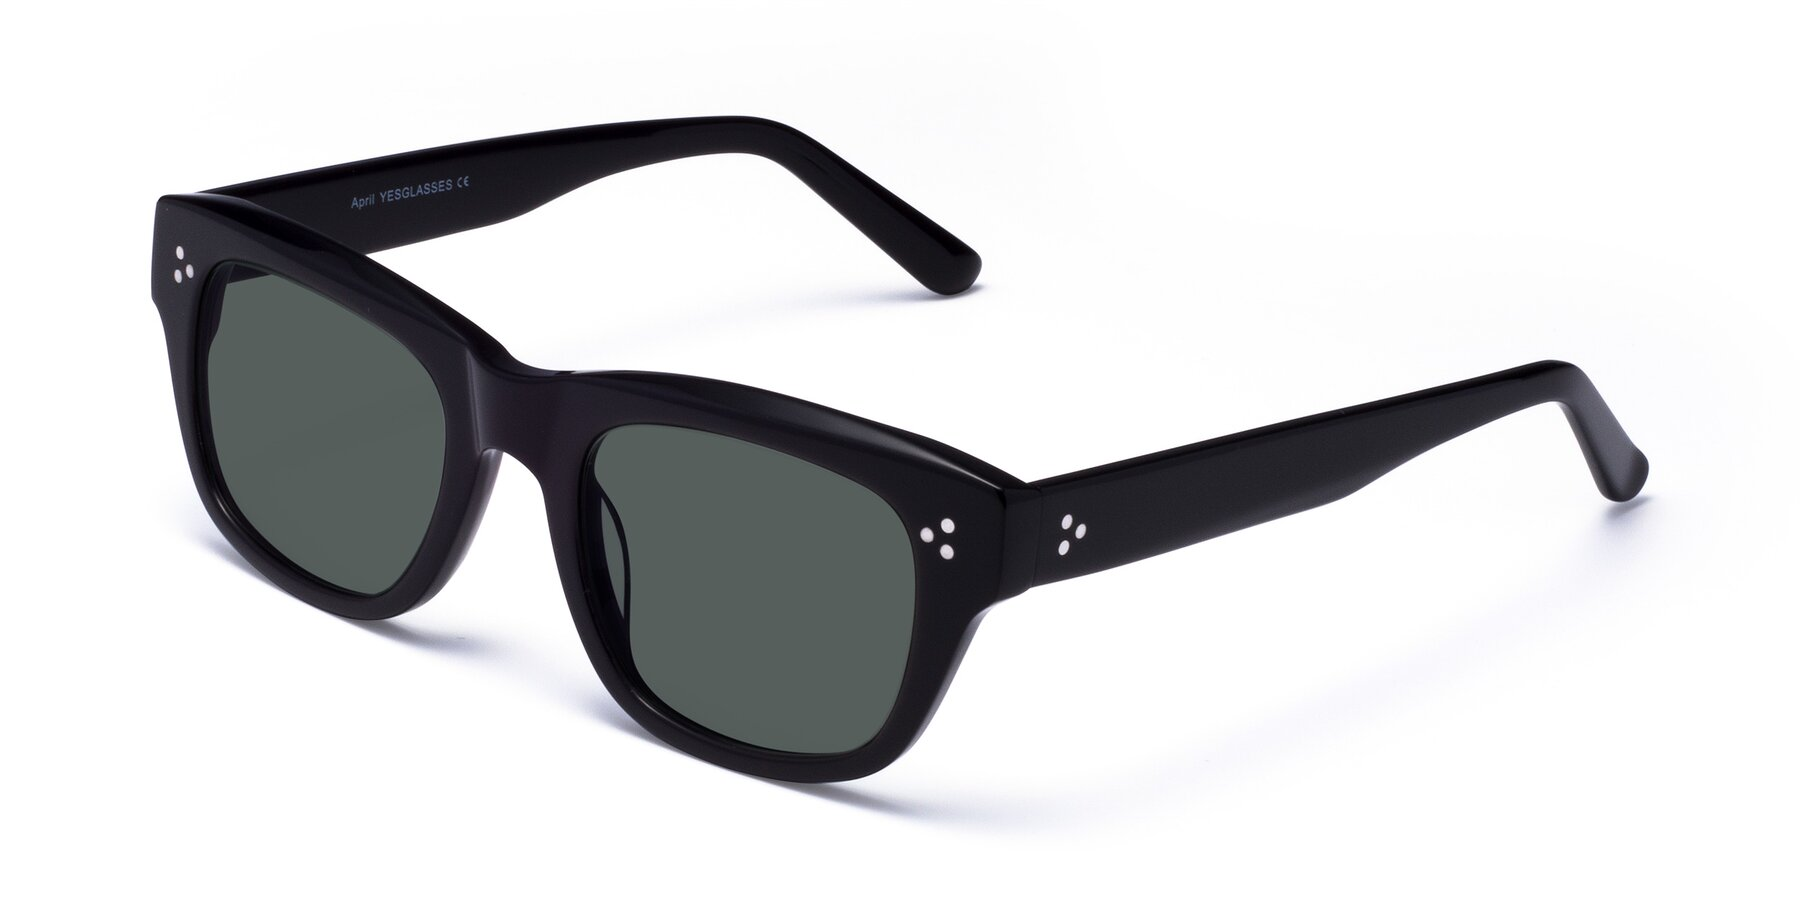 Angle of April in Black with Gray Polarized Lenses